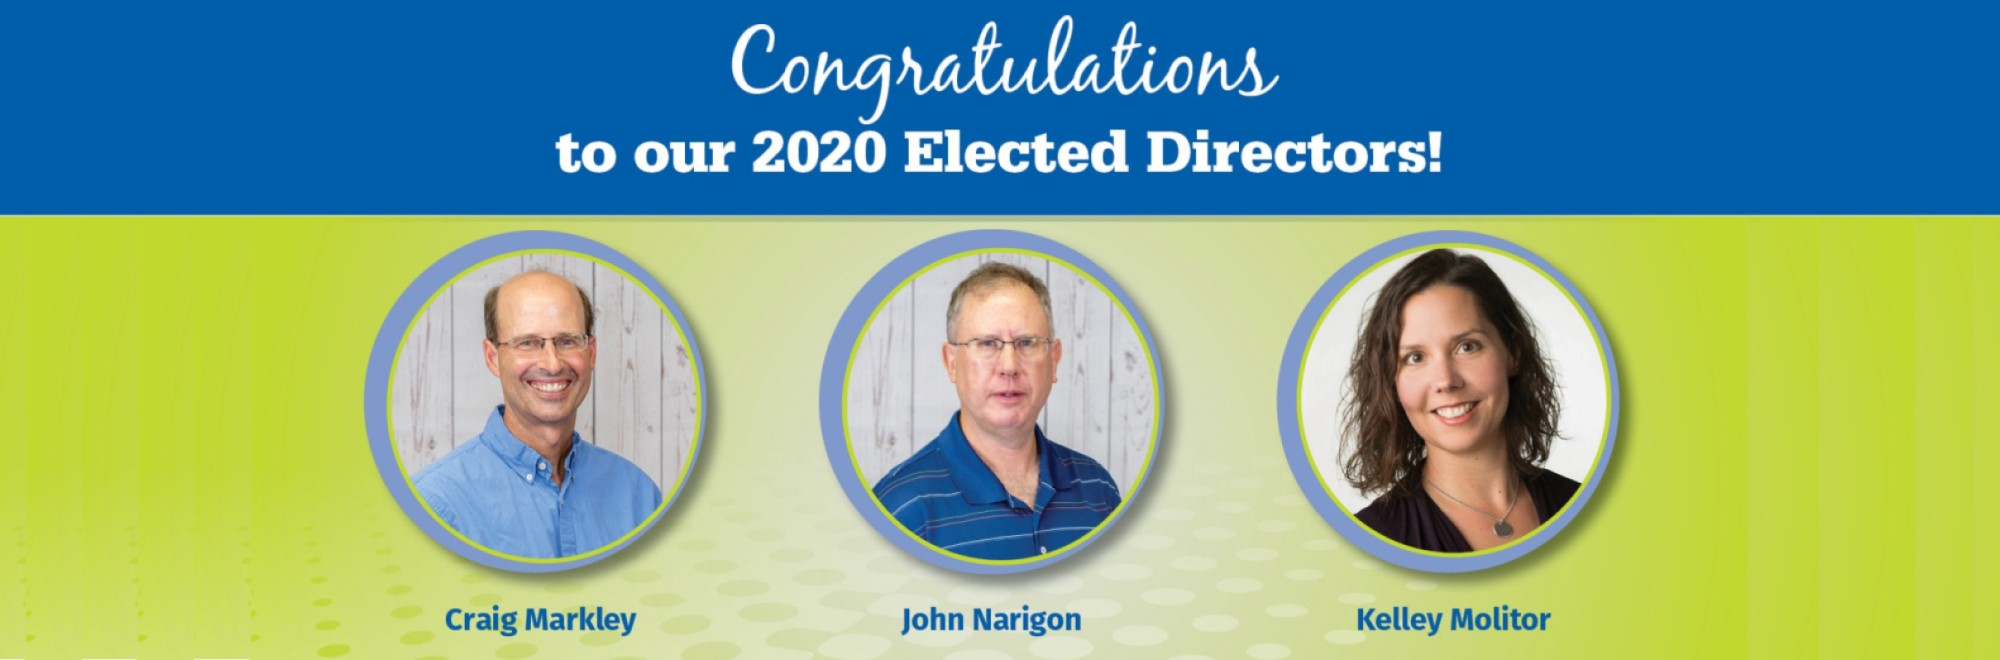 Congratulations to Craig, John & Kelley - our elected board members!